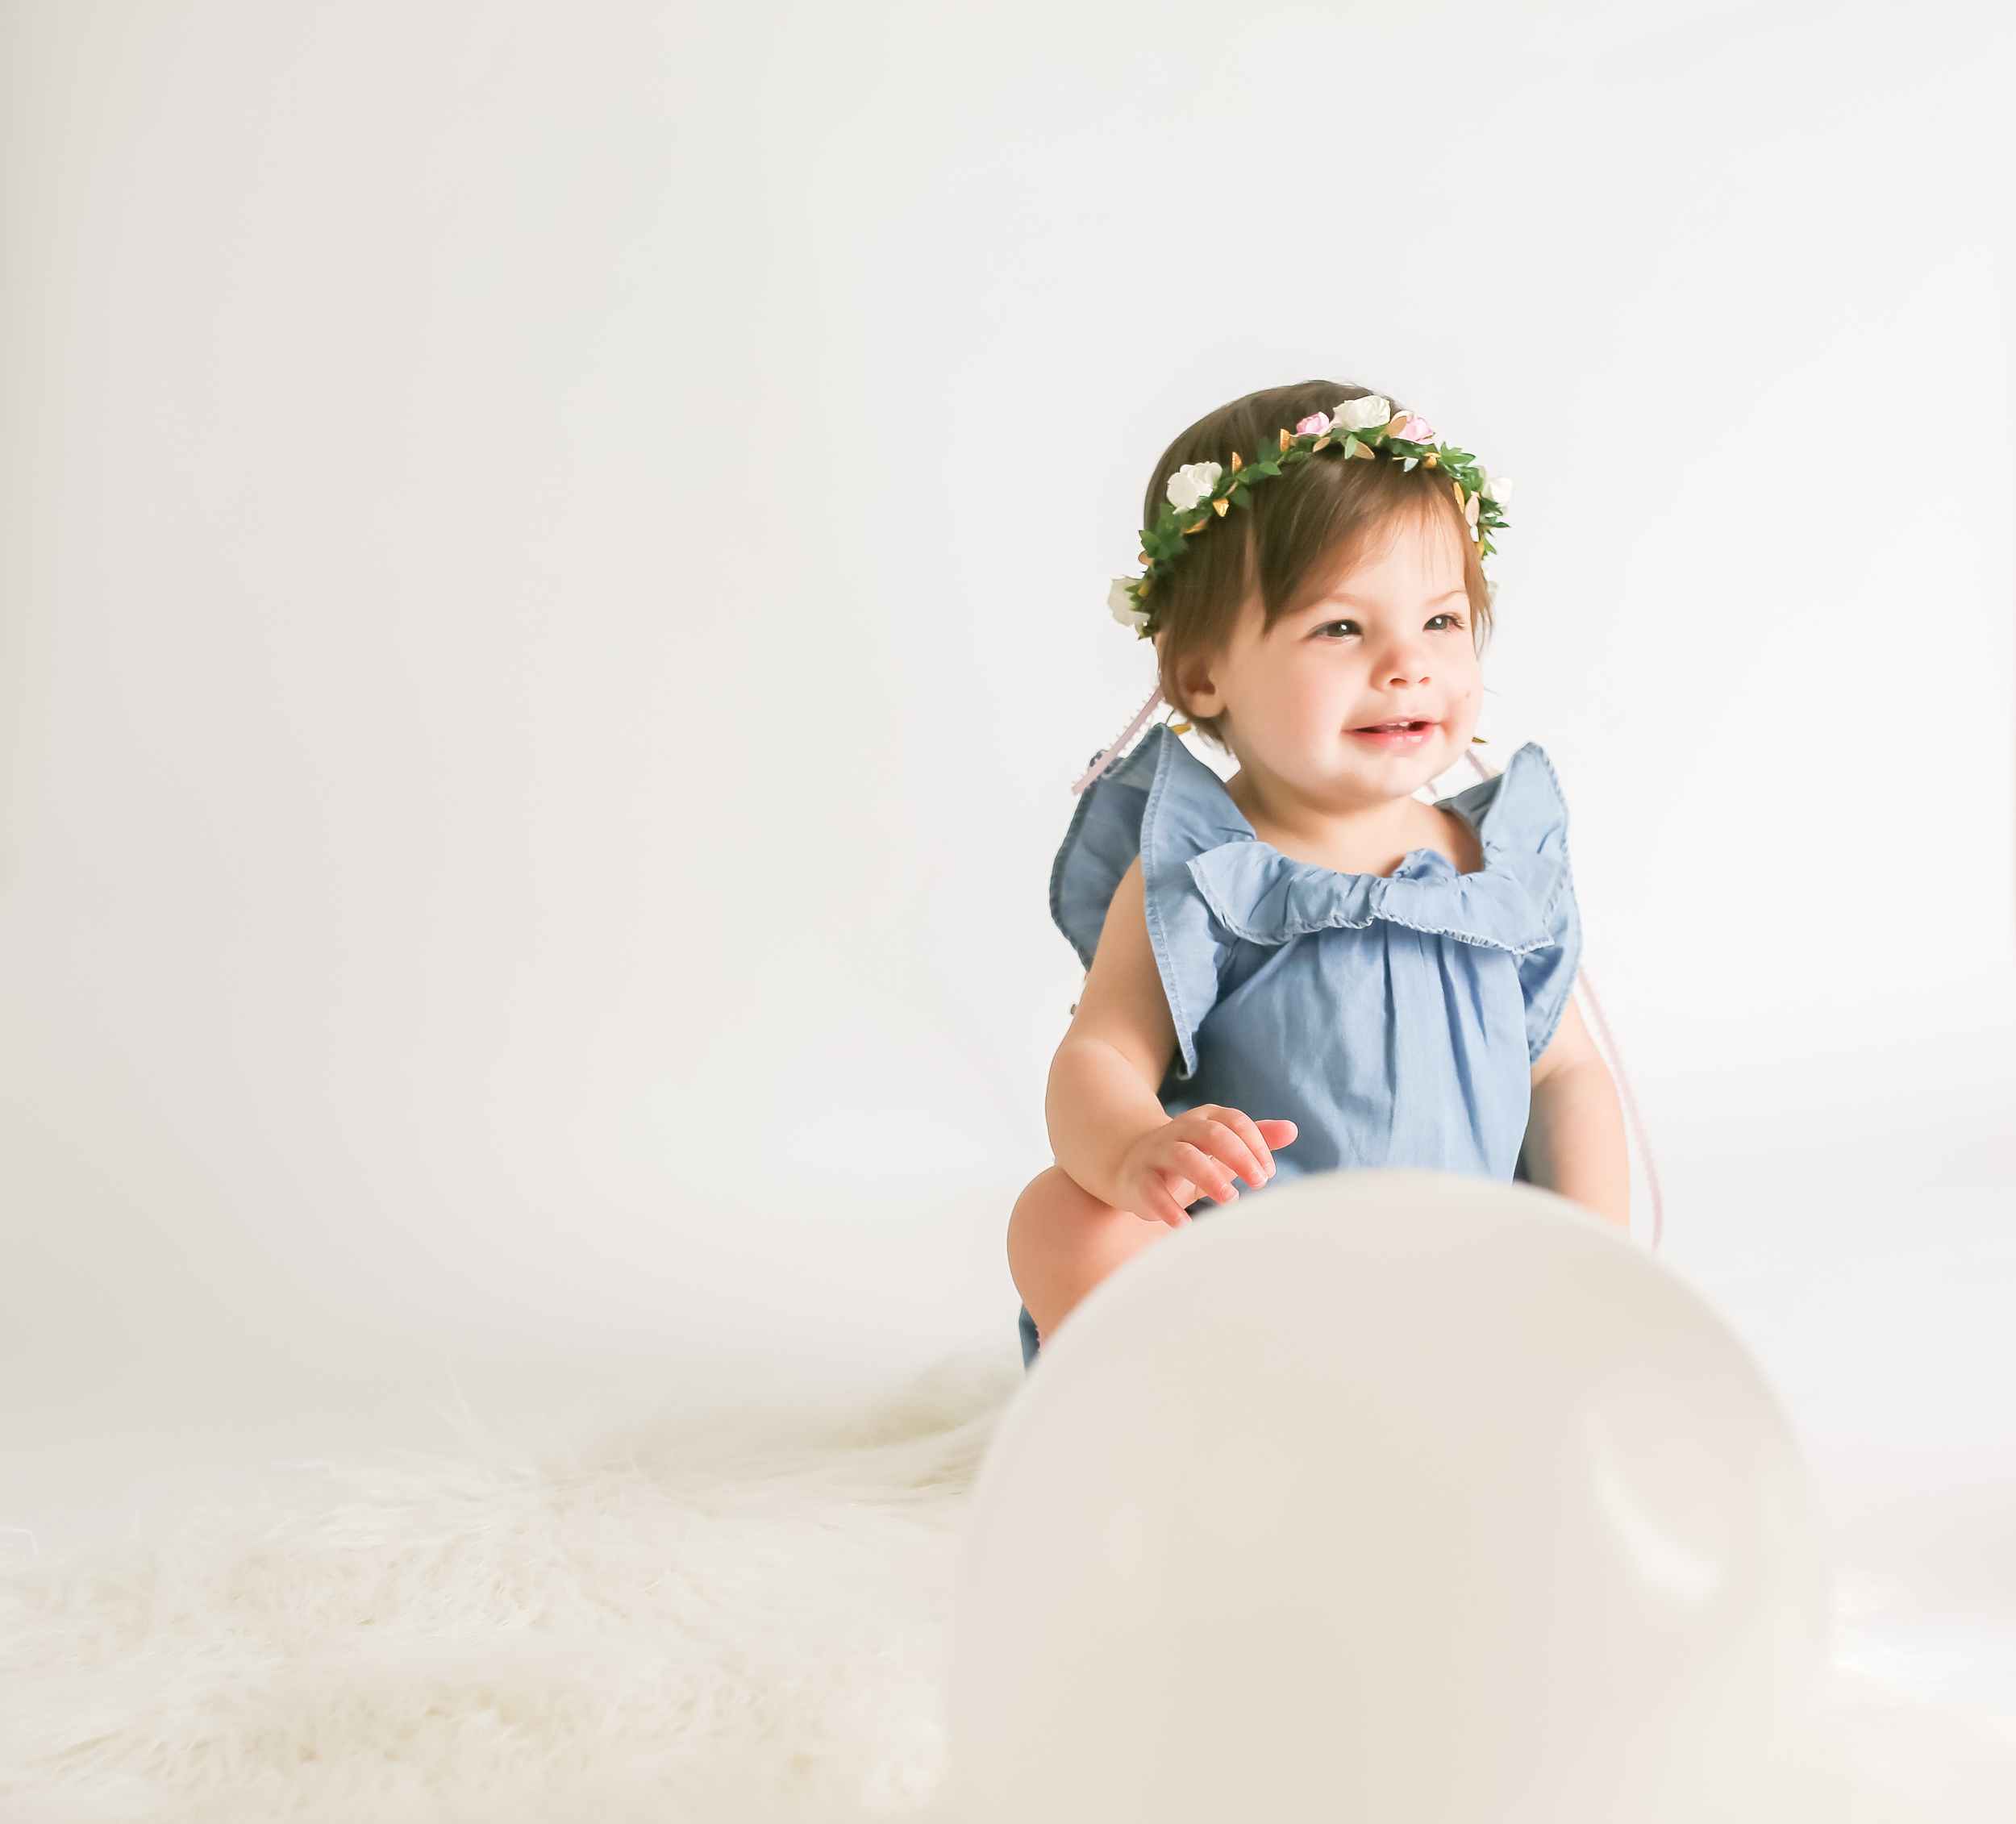 baby girl floral crown